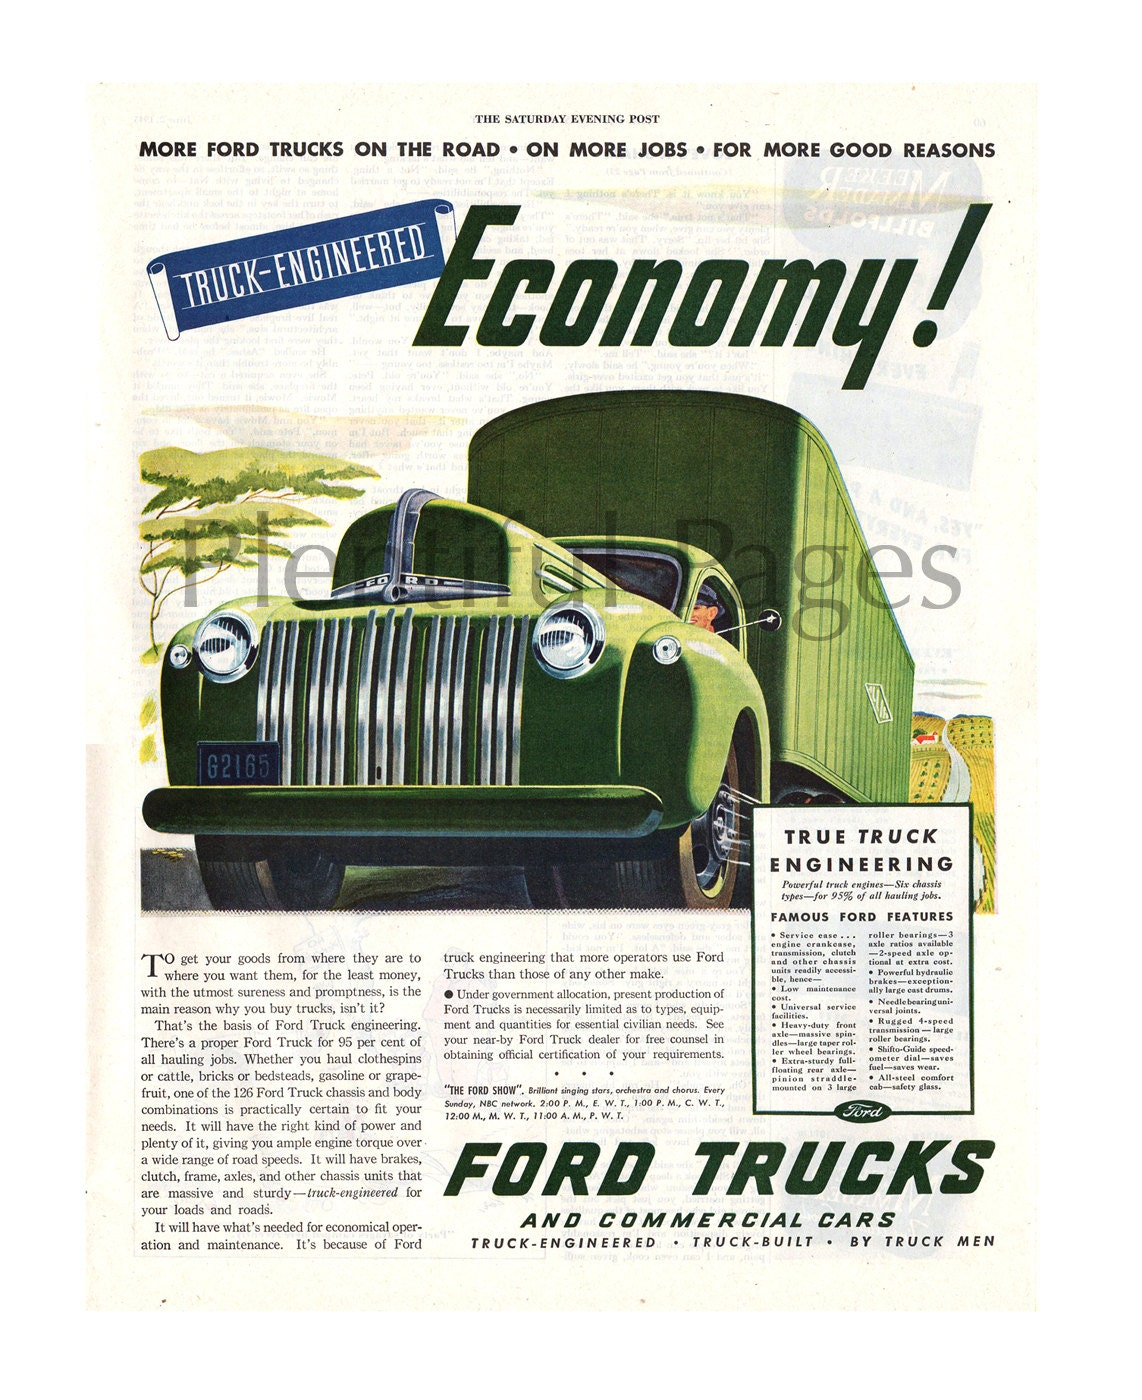 1945 Ford Trucks Vintage Ad, 1940's Ford, 1940's Trucks, Advertising Art,  Vintage Illustration, Retro Truck Ad, Great for Framing or Collage